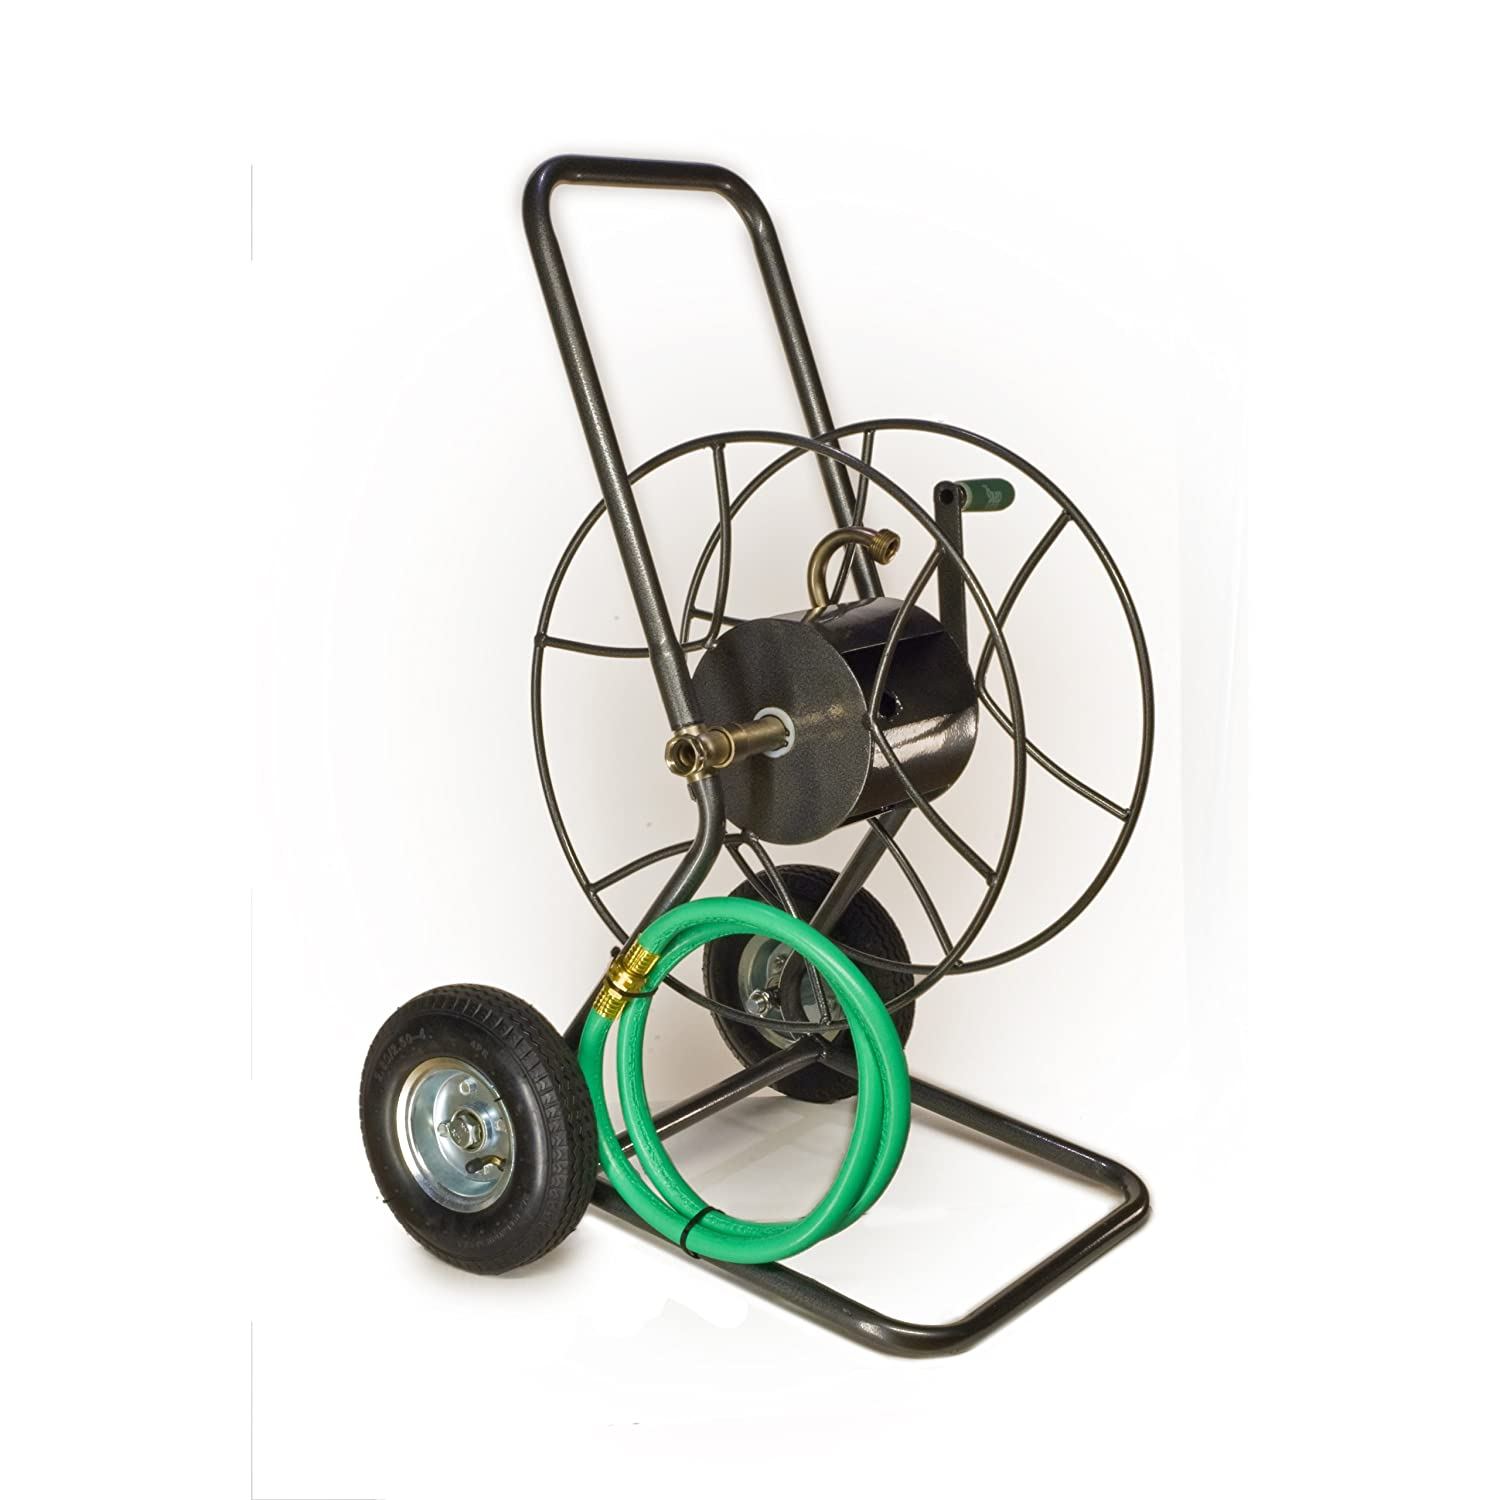 Yard Butler HT-2EZ 2-Wheeled Garden Hose Truck with 175-Foot Hose Capacity